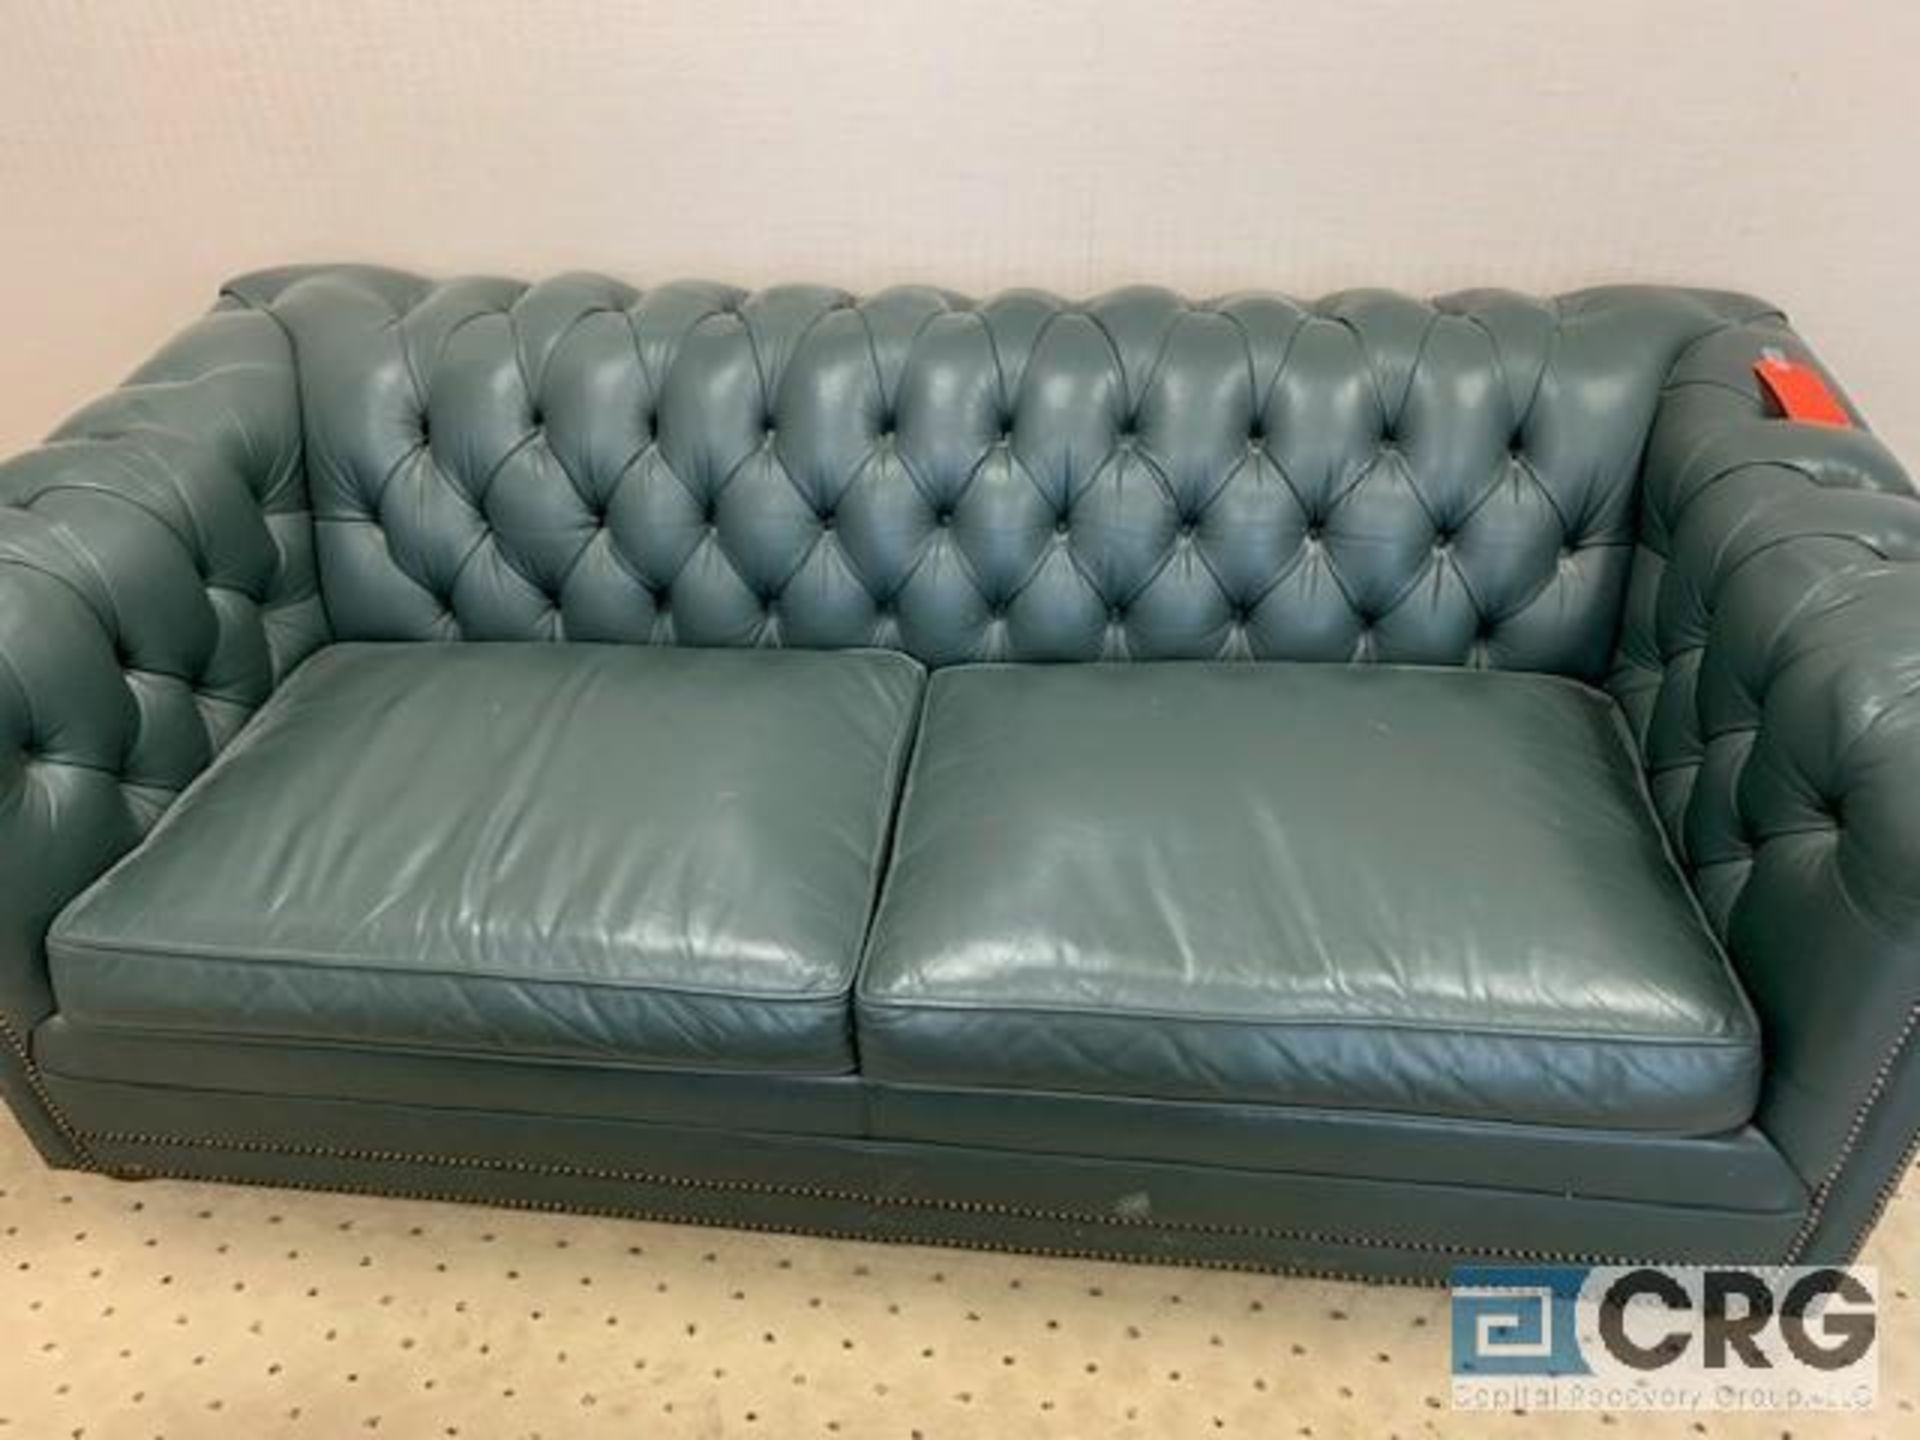 Lot 535 - 6 foot leather sofa with arm chair and coffee table